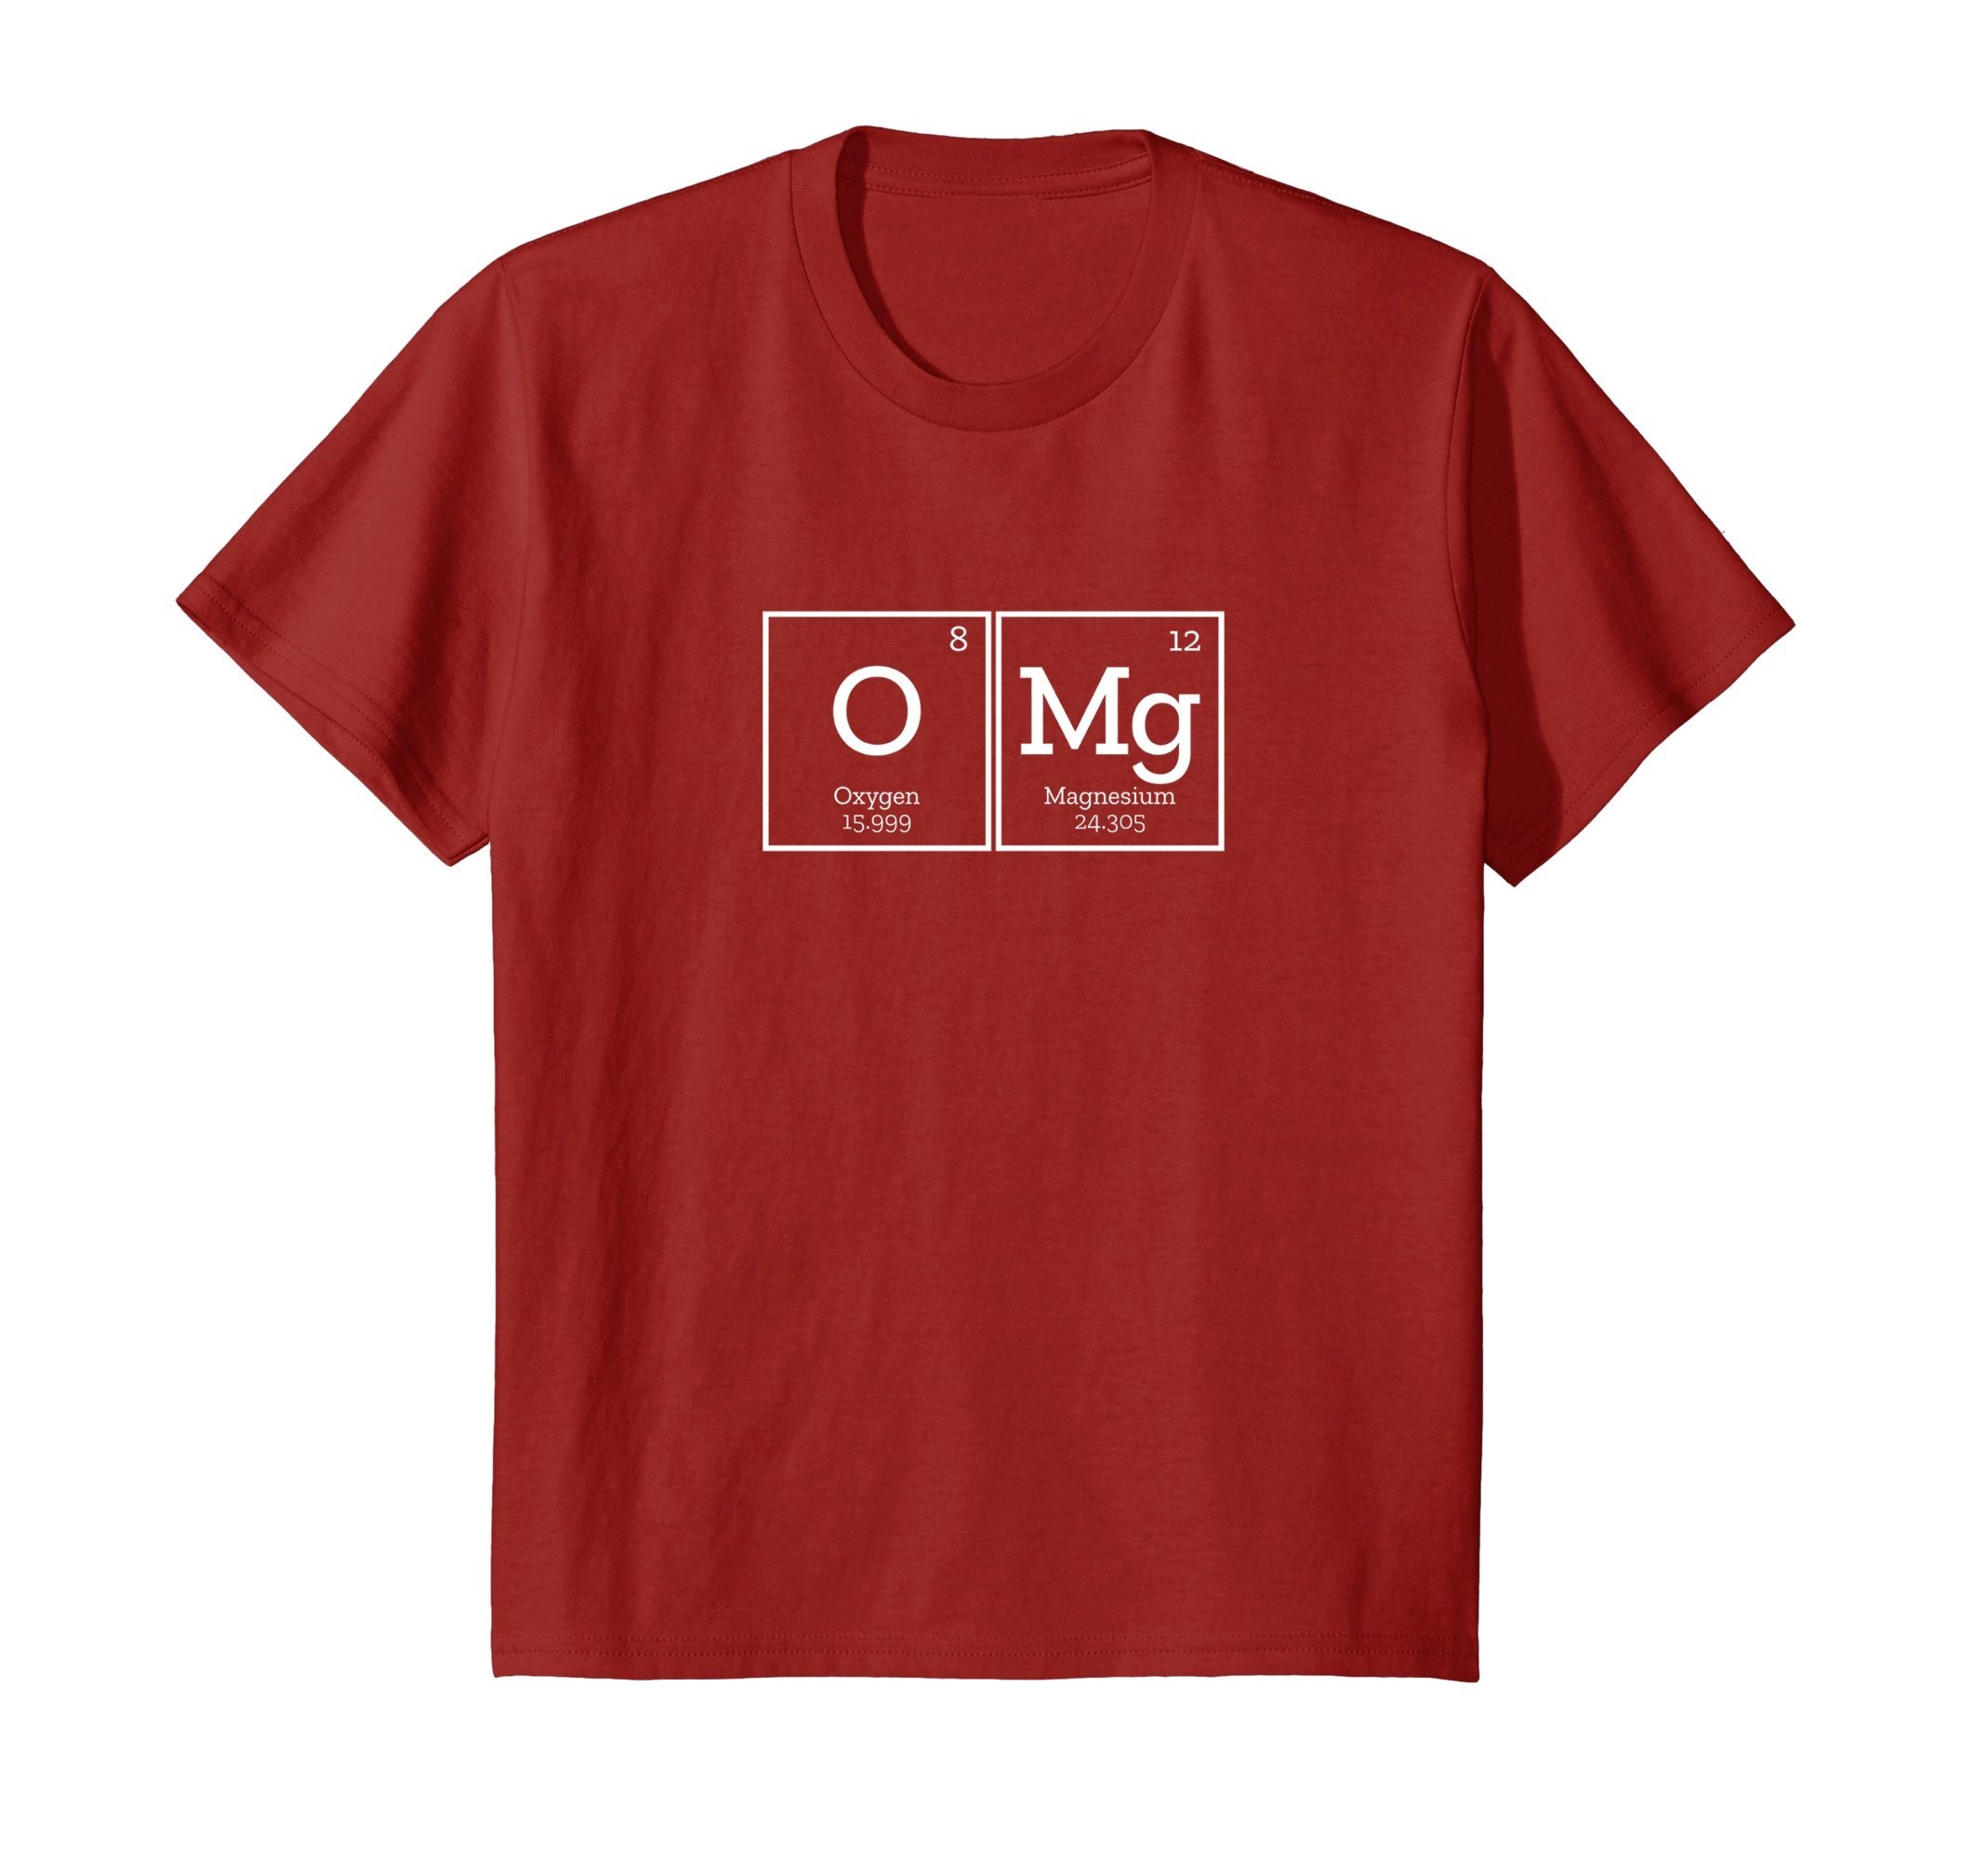 Omg Funny Periodic Table Chemistry Pun Gift 356600434 Shirts